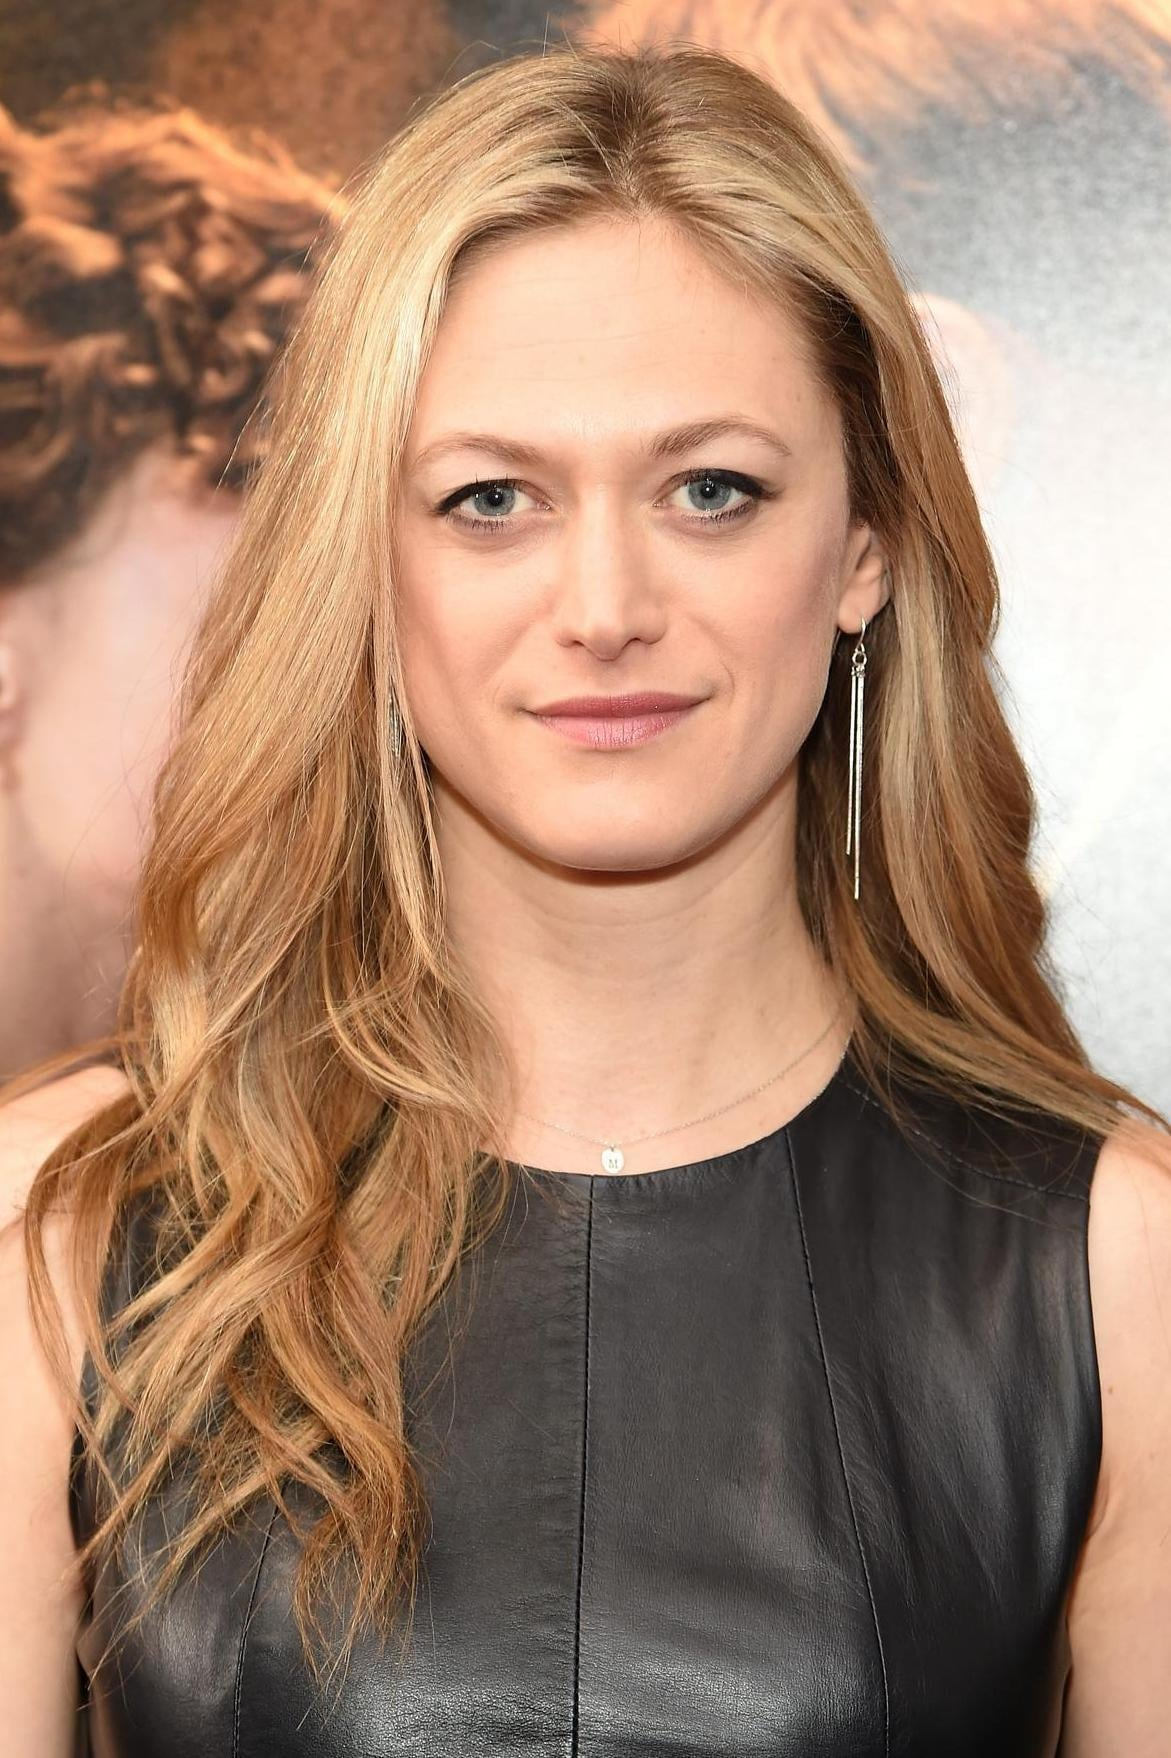 Marin Ireland naked (89 photos), pictures Boobs, Twitter, in bikini 2017